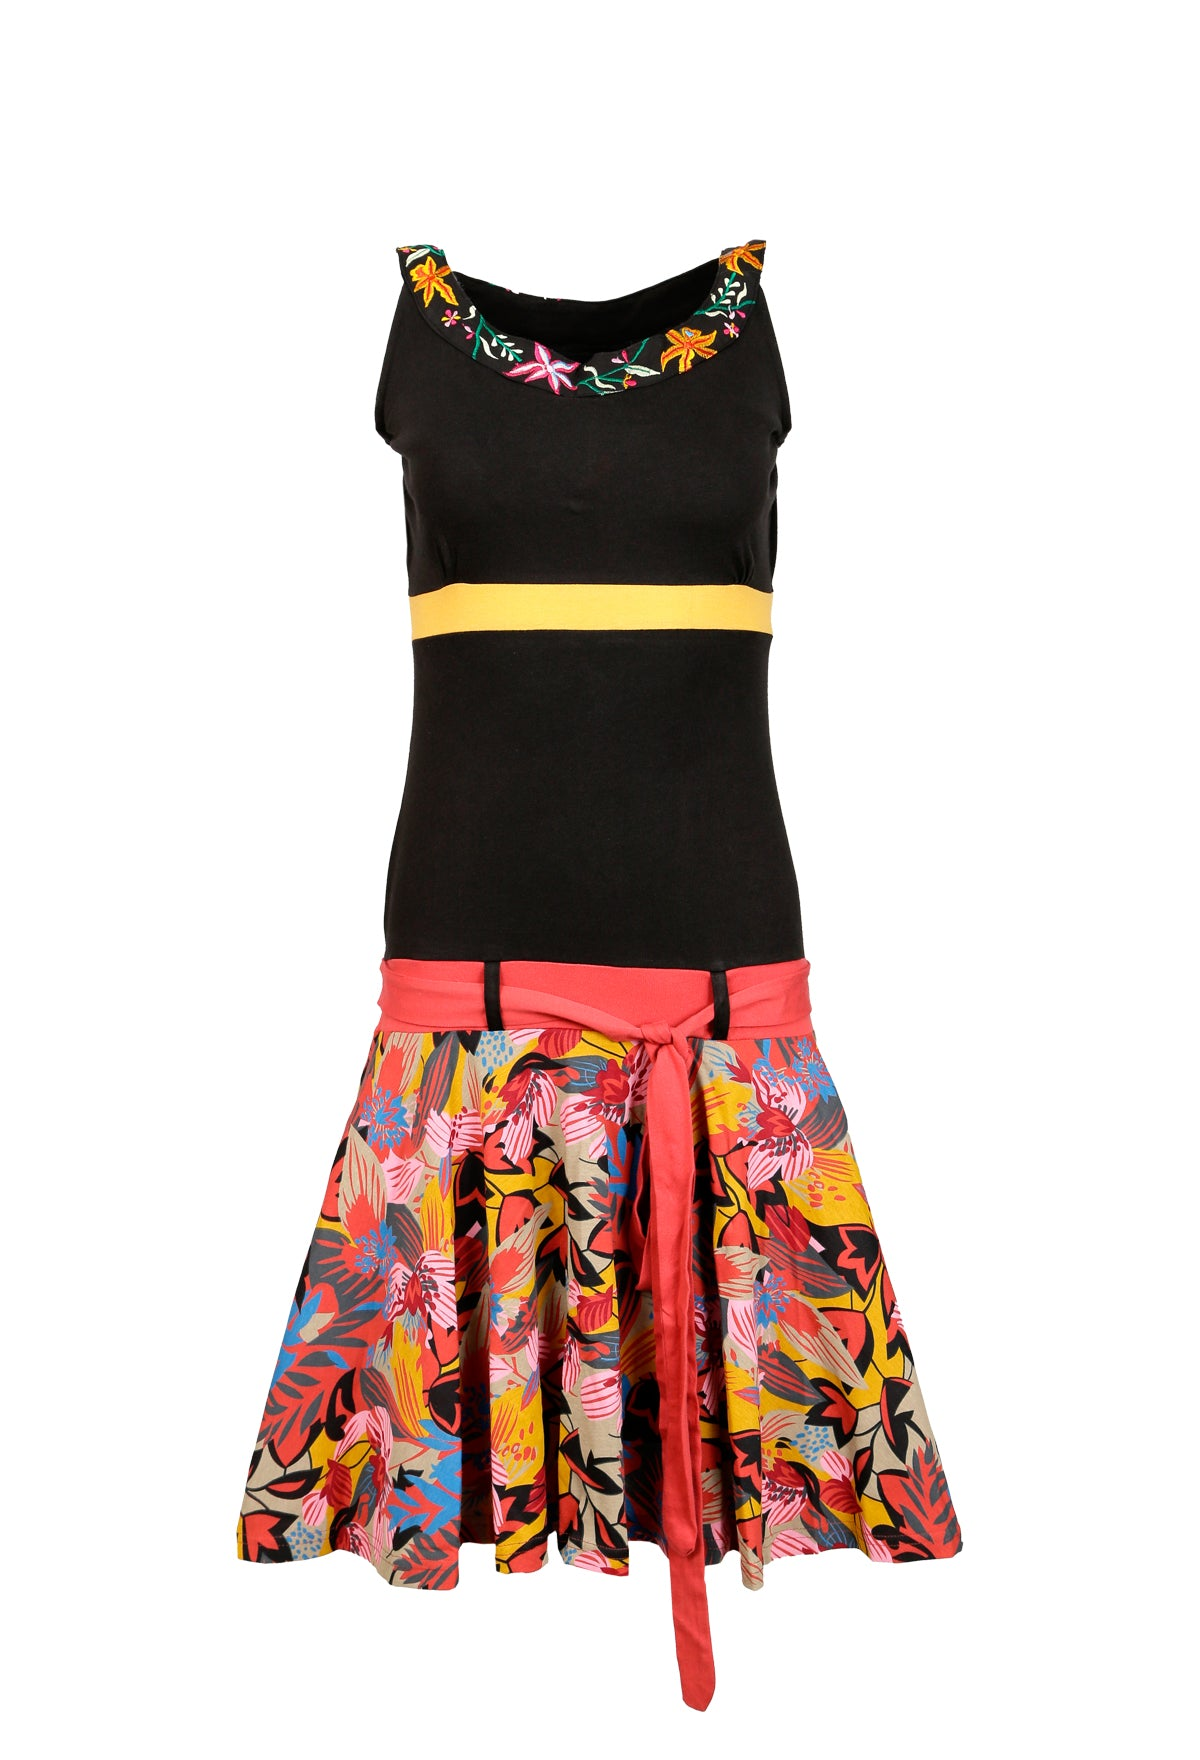 Ladies Summer Sleeveless Dress with Colorful Flower Pattern Print. - Craze Trade Limited